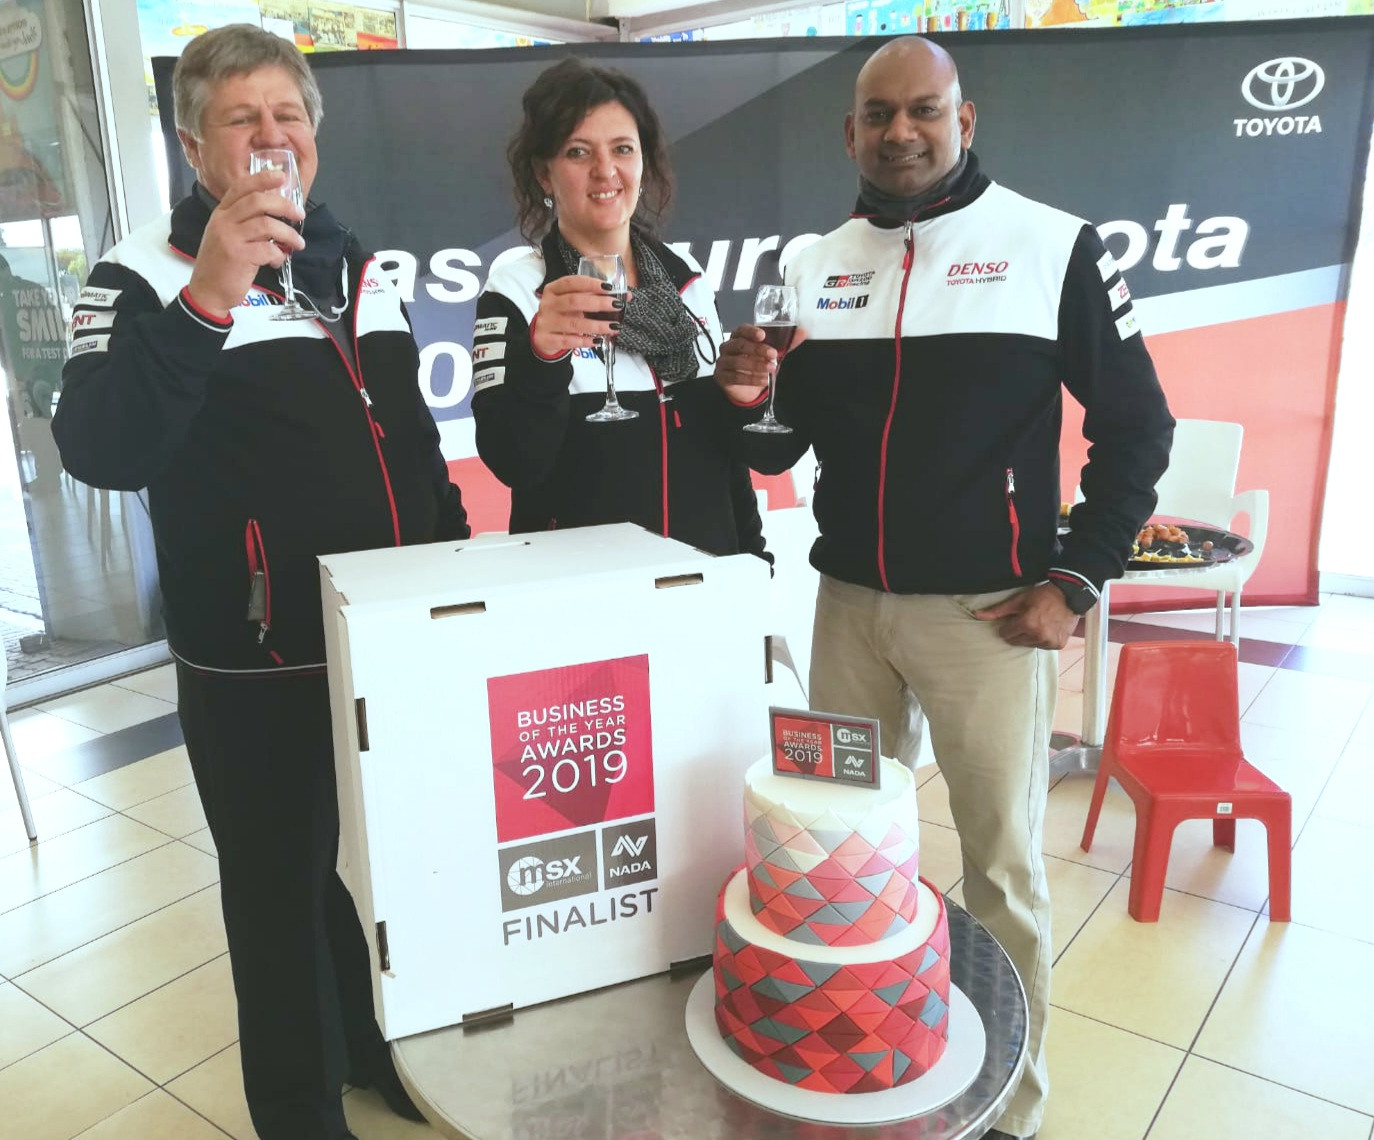 Hannes Strydom (Dealer Principal at Vaal Toyota Sasolburg), Zarlene Hugo (Sales Manager) and Dezesh Simunger (After-sales Manager) celebrating winning the award.